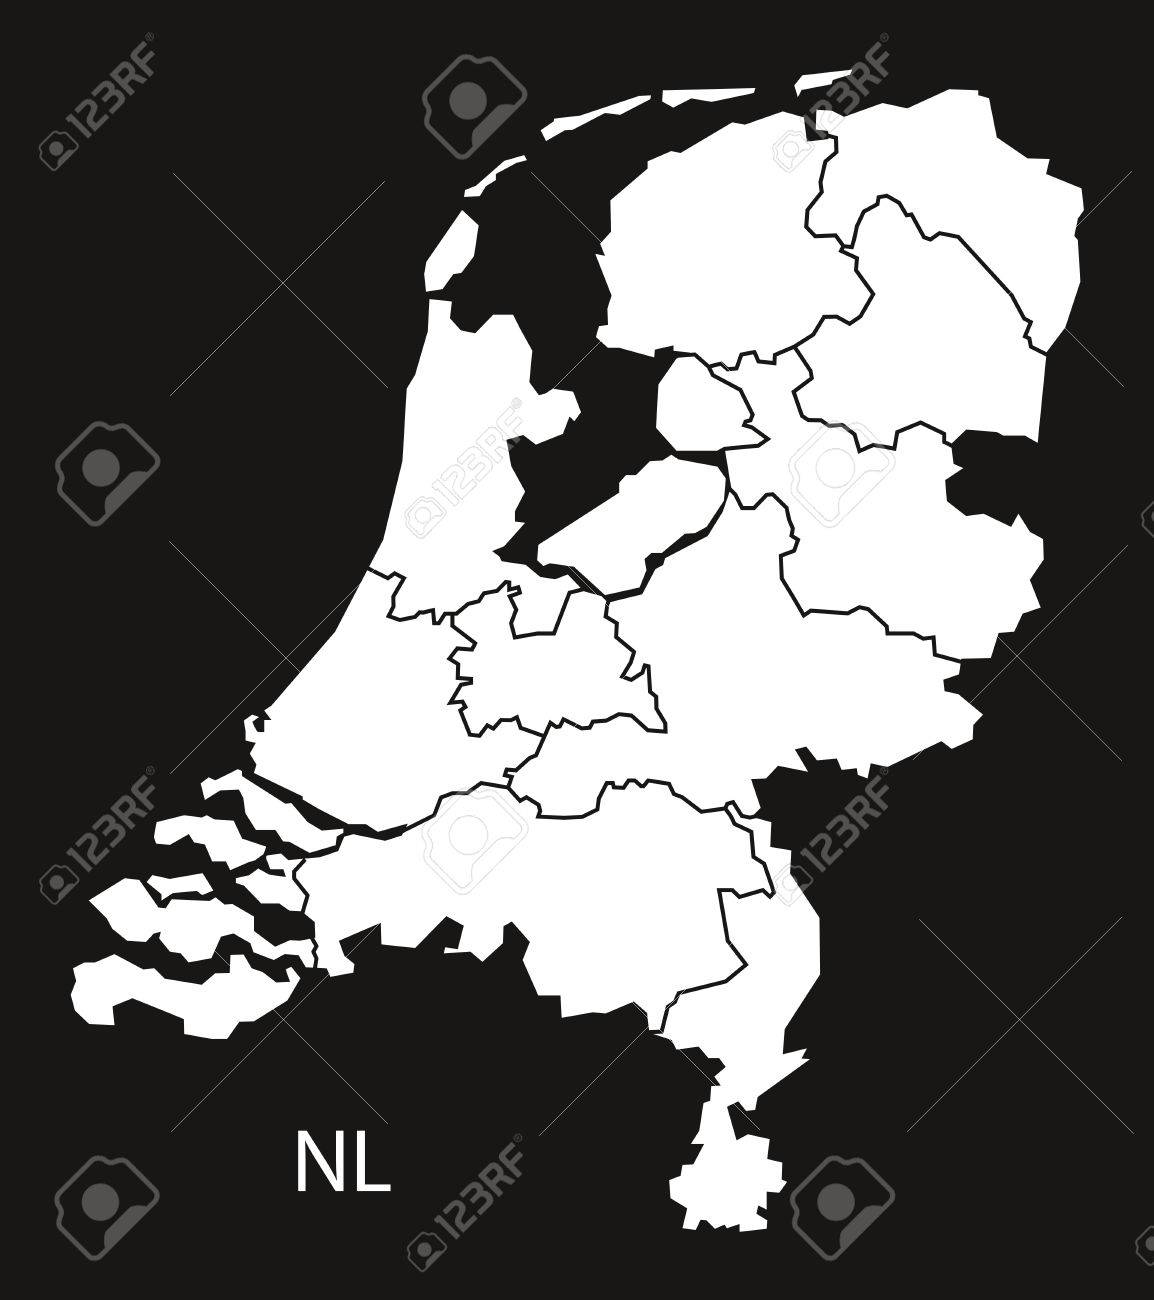 Netherlands Map With Provinces Black White Royalty Free Cliparts